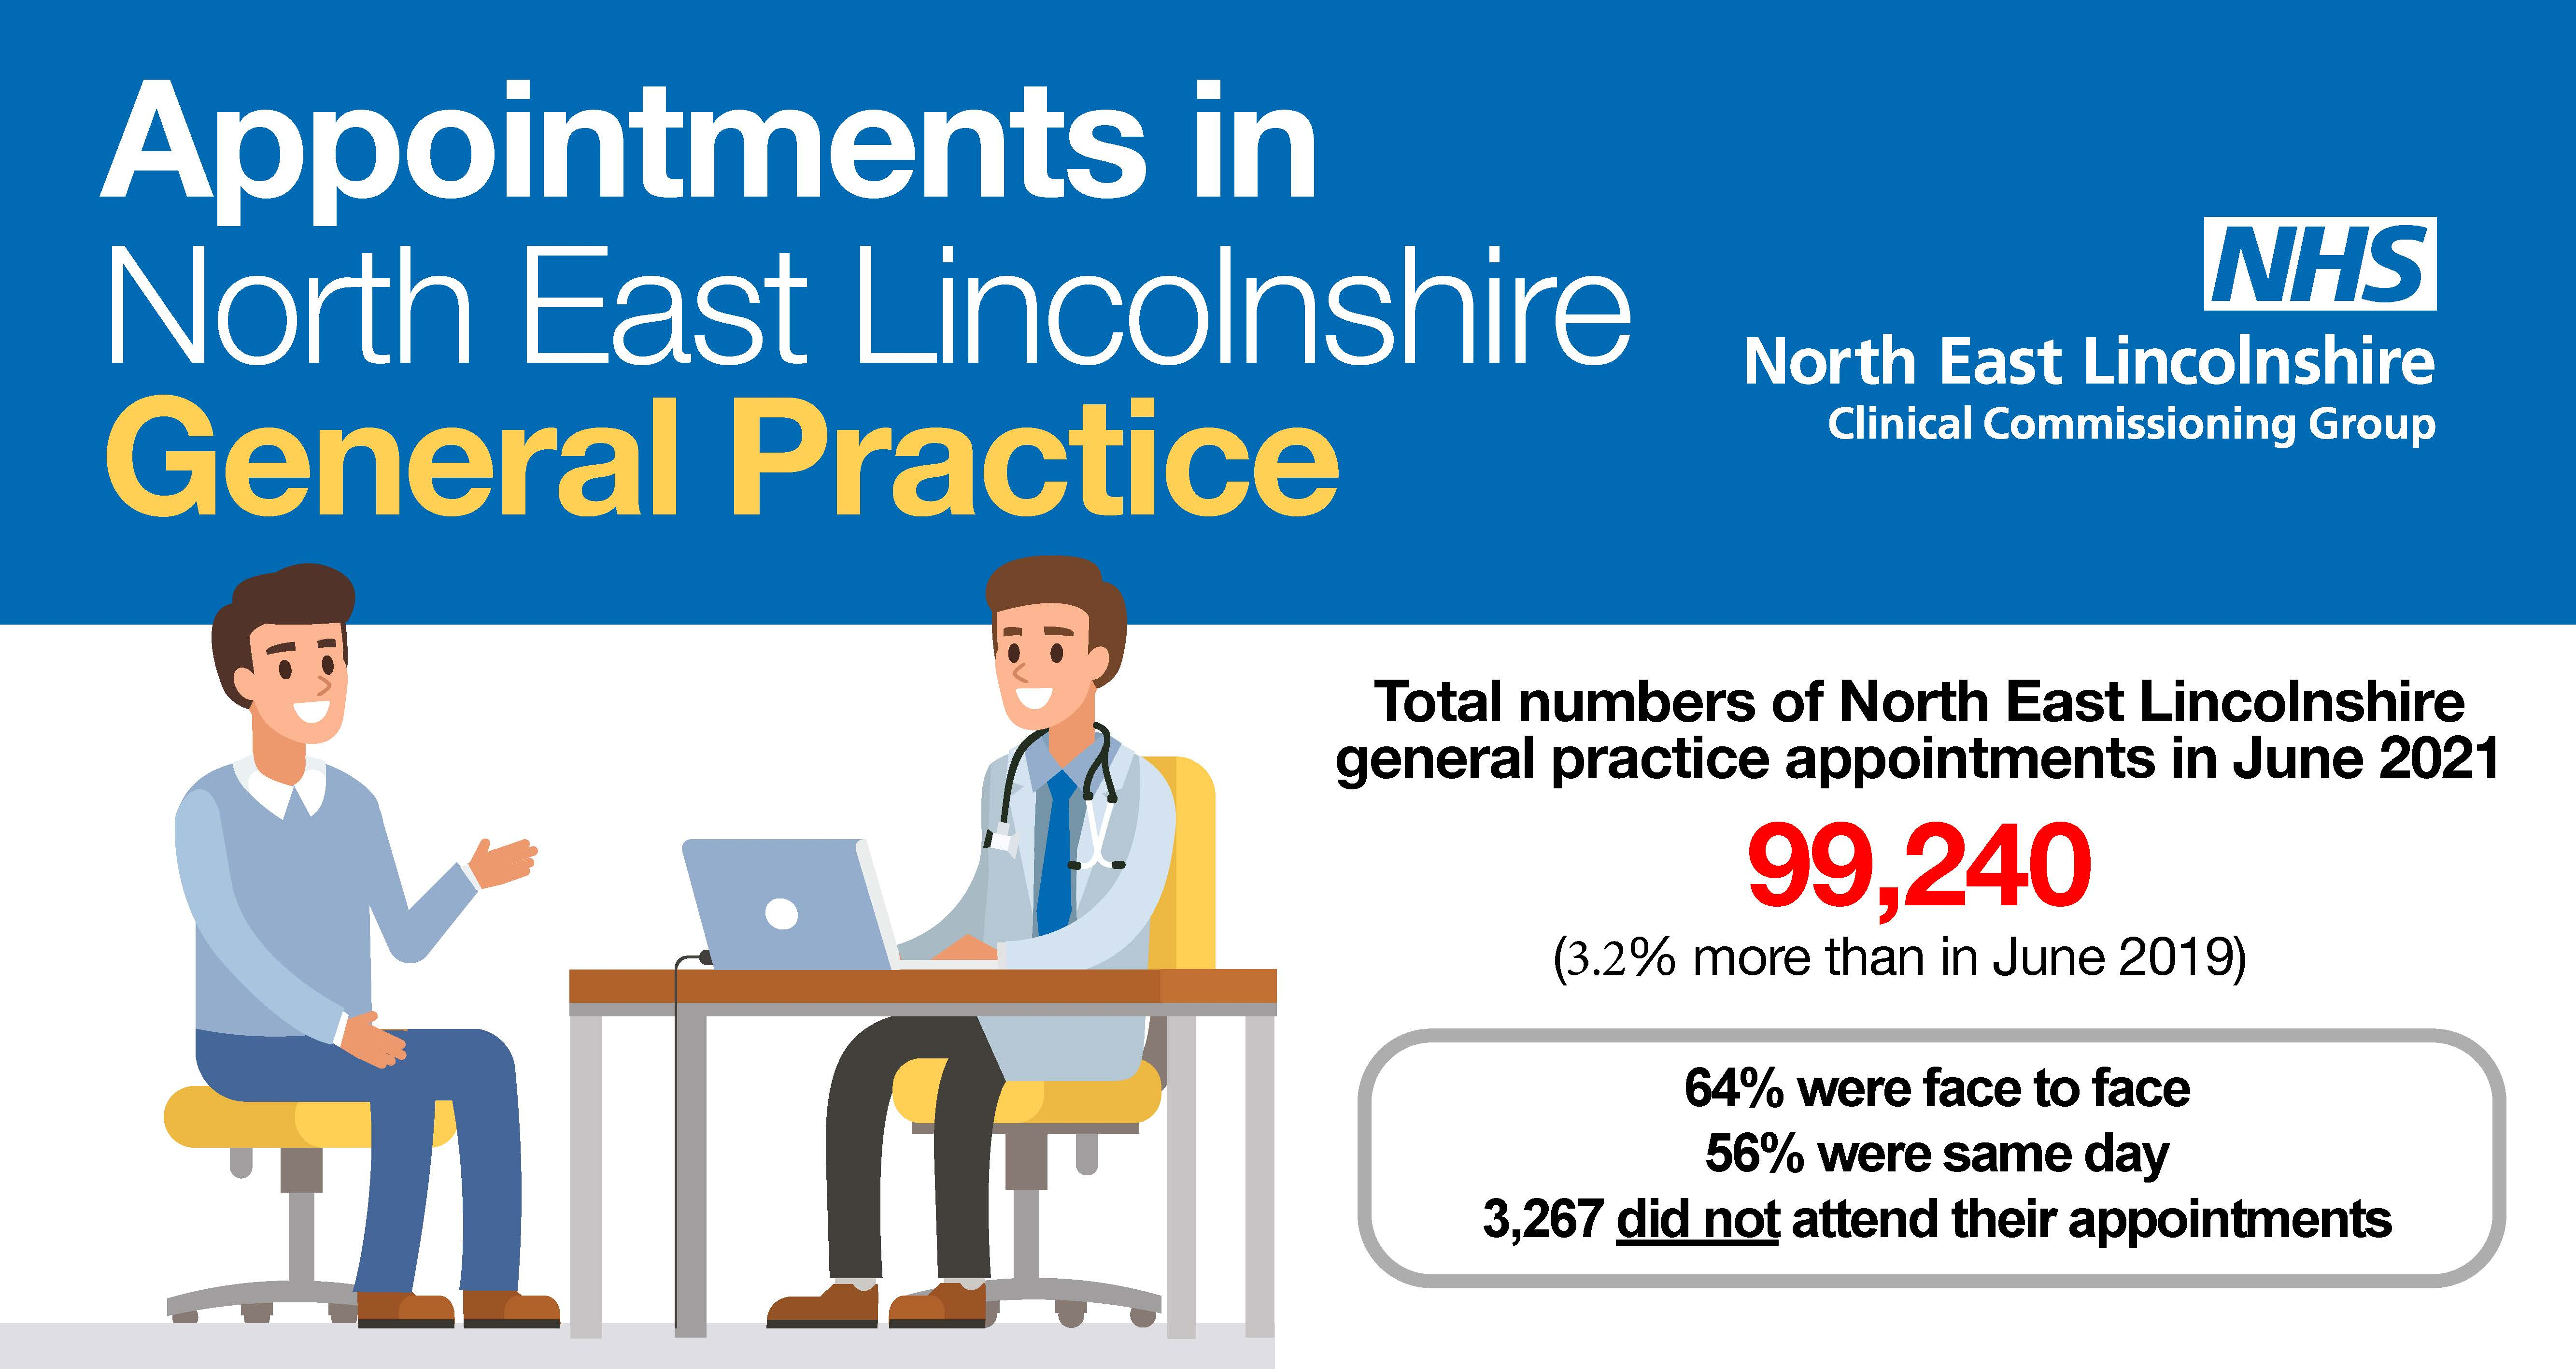 Appointments in North East Lincolnshire General Practice. Total numbers of North East Lincolnshire general practice appointments in June 2021: 99,240 (3.2% more than June 2019). 64% were face to face, and 56% were same day. 3,267 did not attend their appointments.